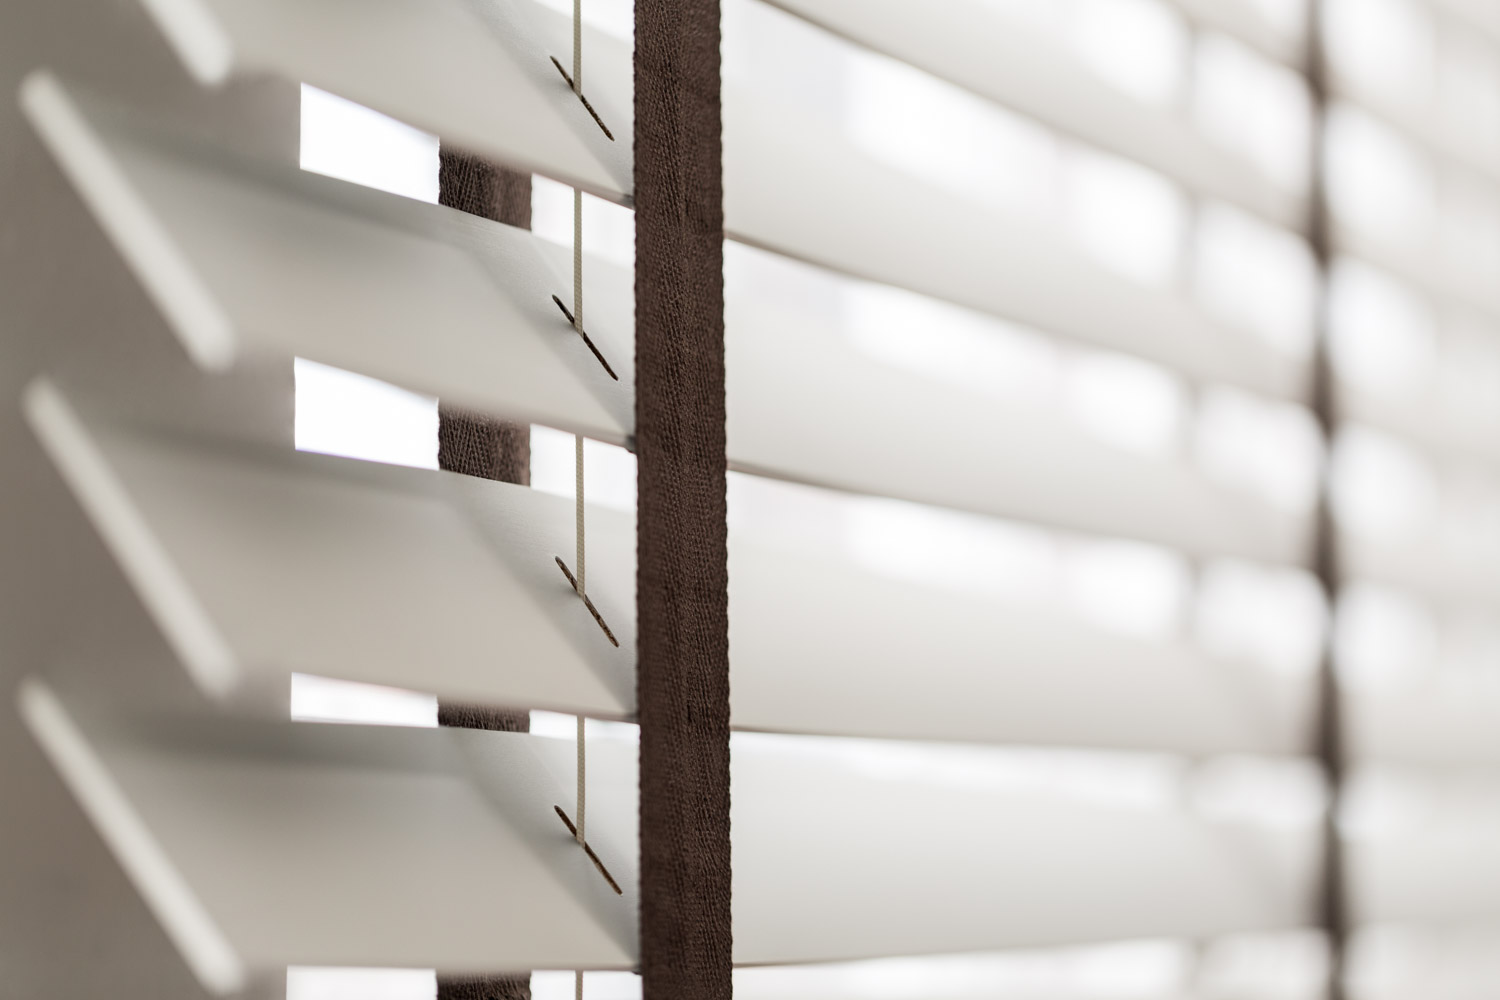 Faux Wood Blinds Are Extremely Durable For Your Bathroom.